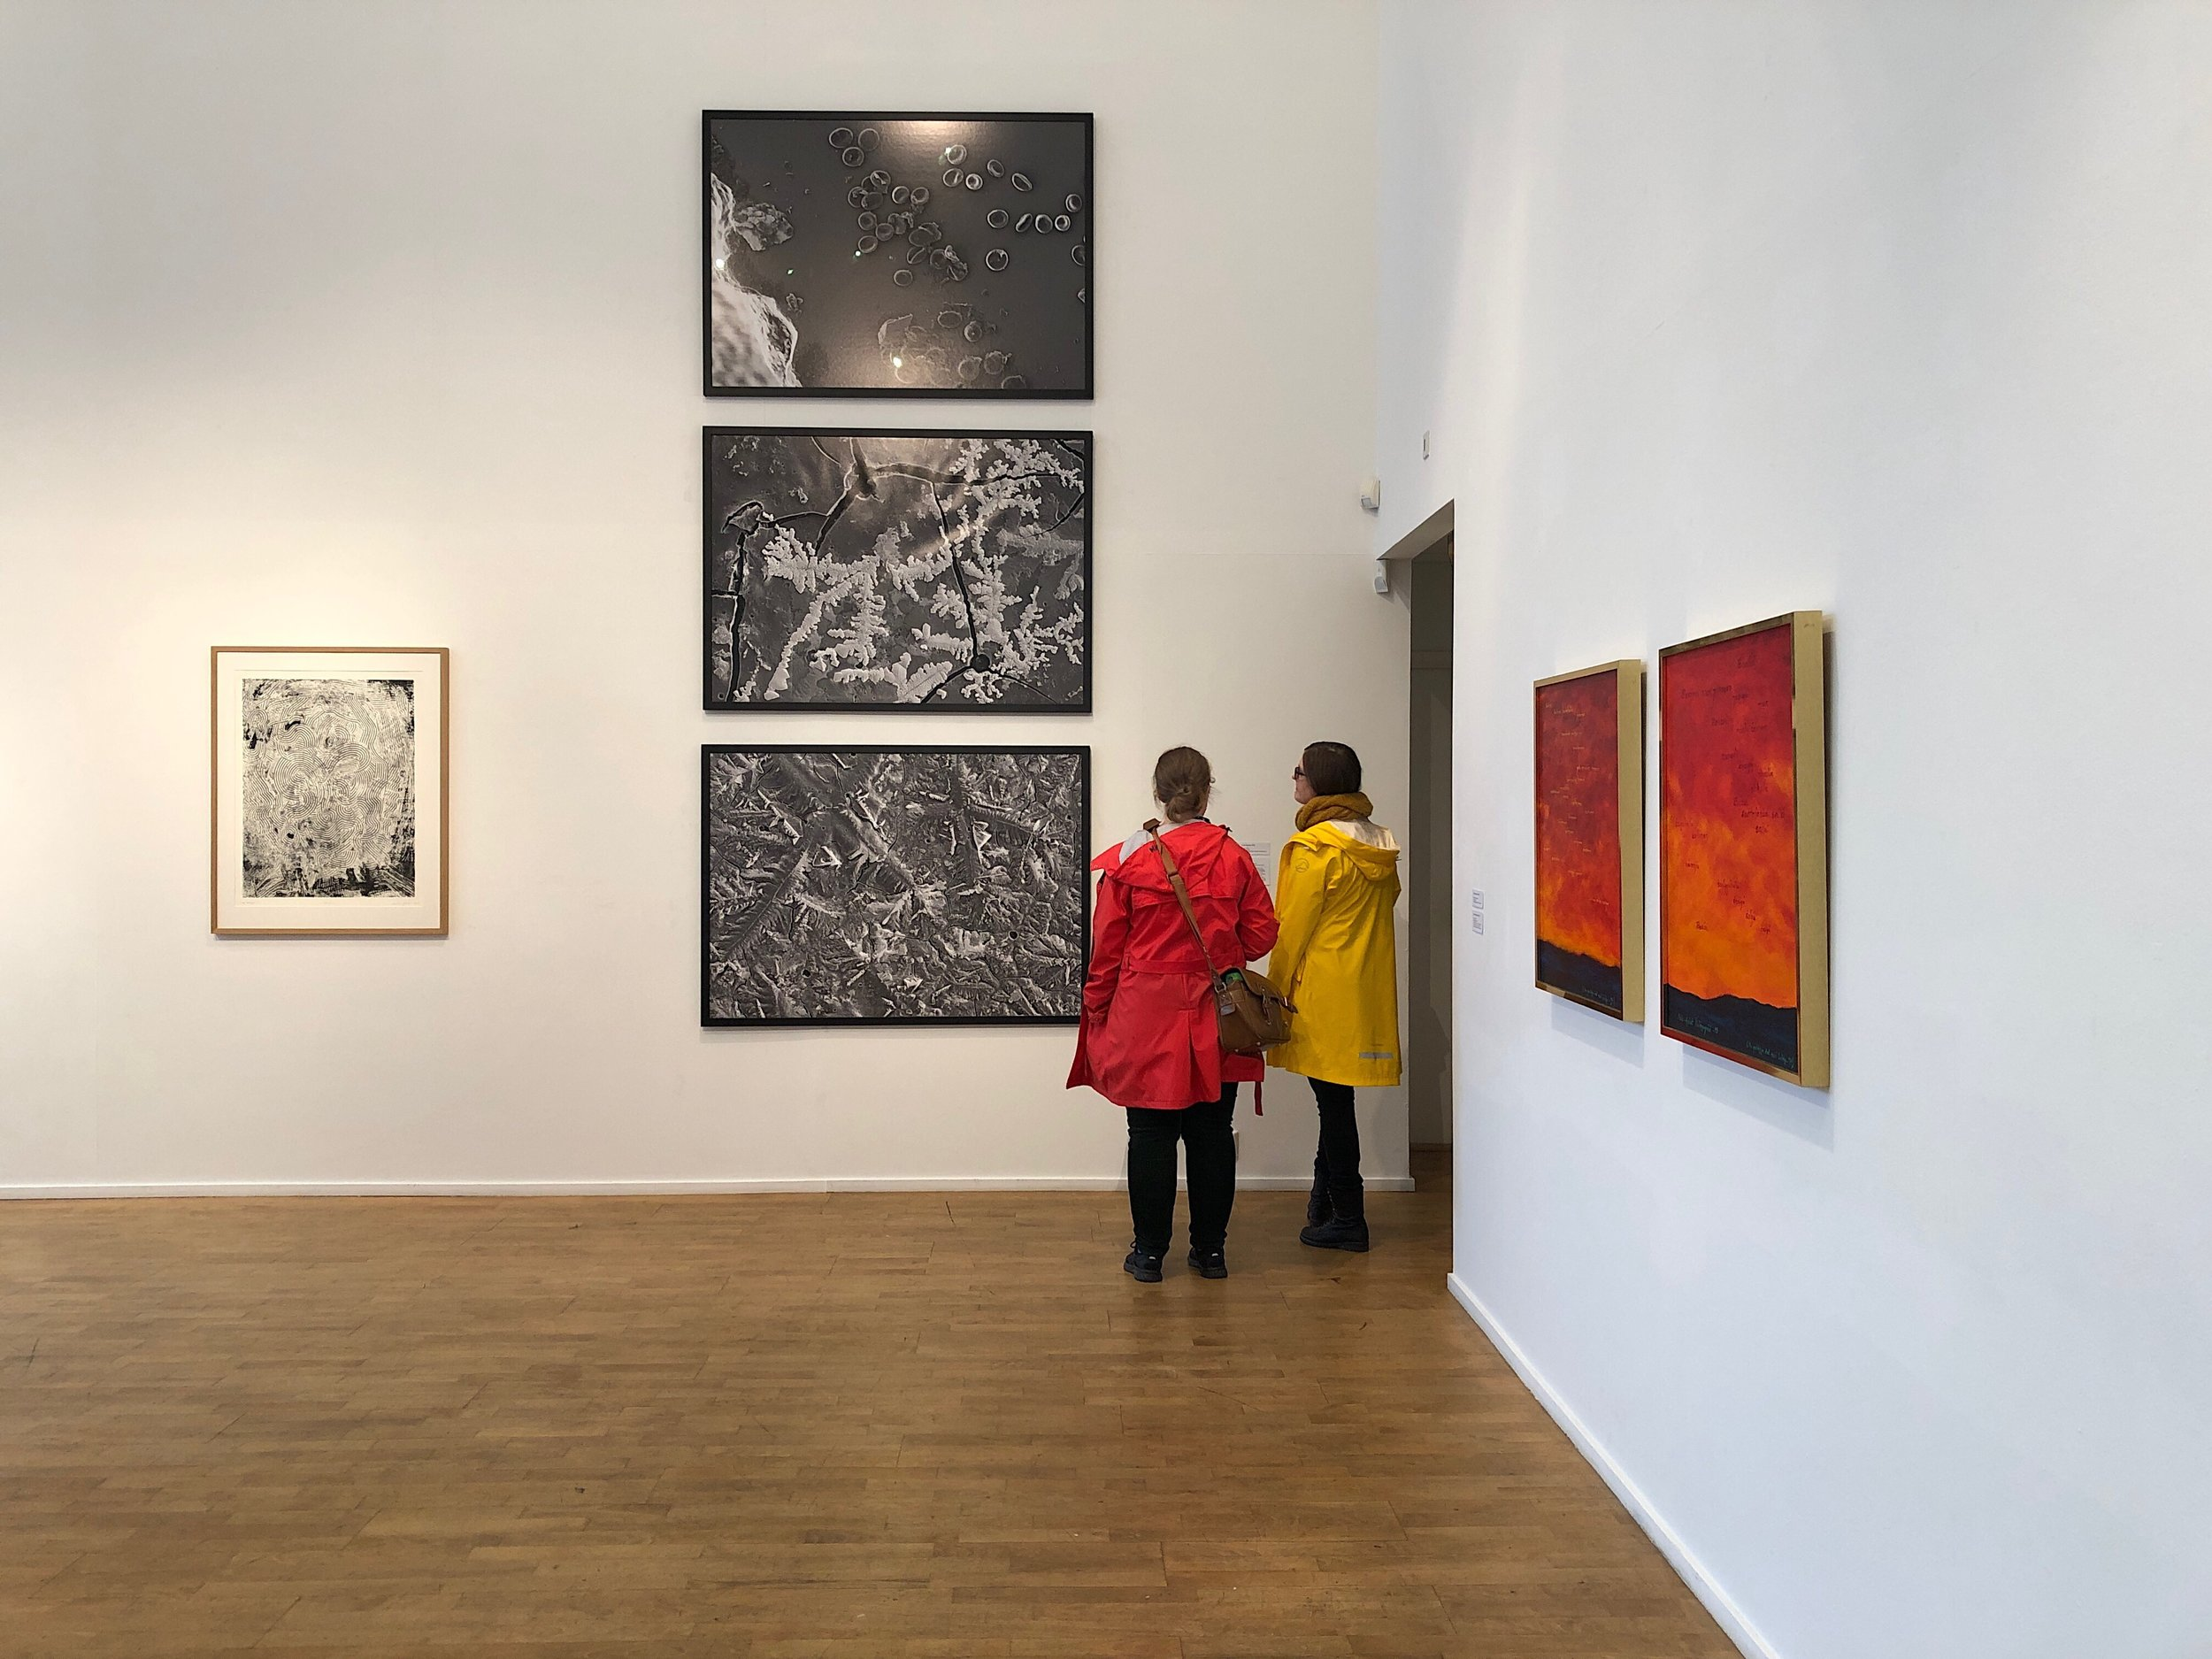 Gallery visitors looking at the series of three ink jet prints that make up the piece  Blood, Sweat and Tears  (2019) by Tanya Busse. To the left is Arnold Johansen's graphic work  Maske 3  (2013) and on the wall to the right is Nils Aslak Valkeapää's paintings  Beaivi  (1995). Photo: Hilde Sørstrøm